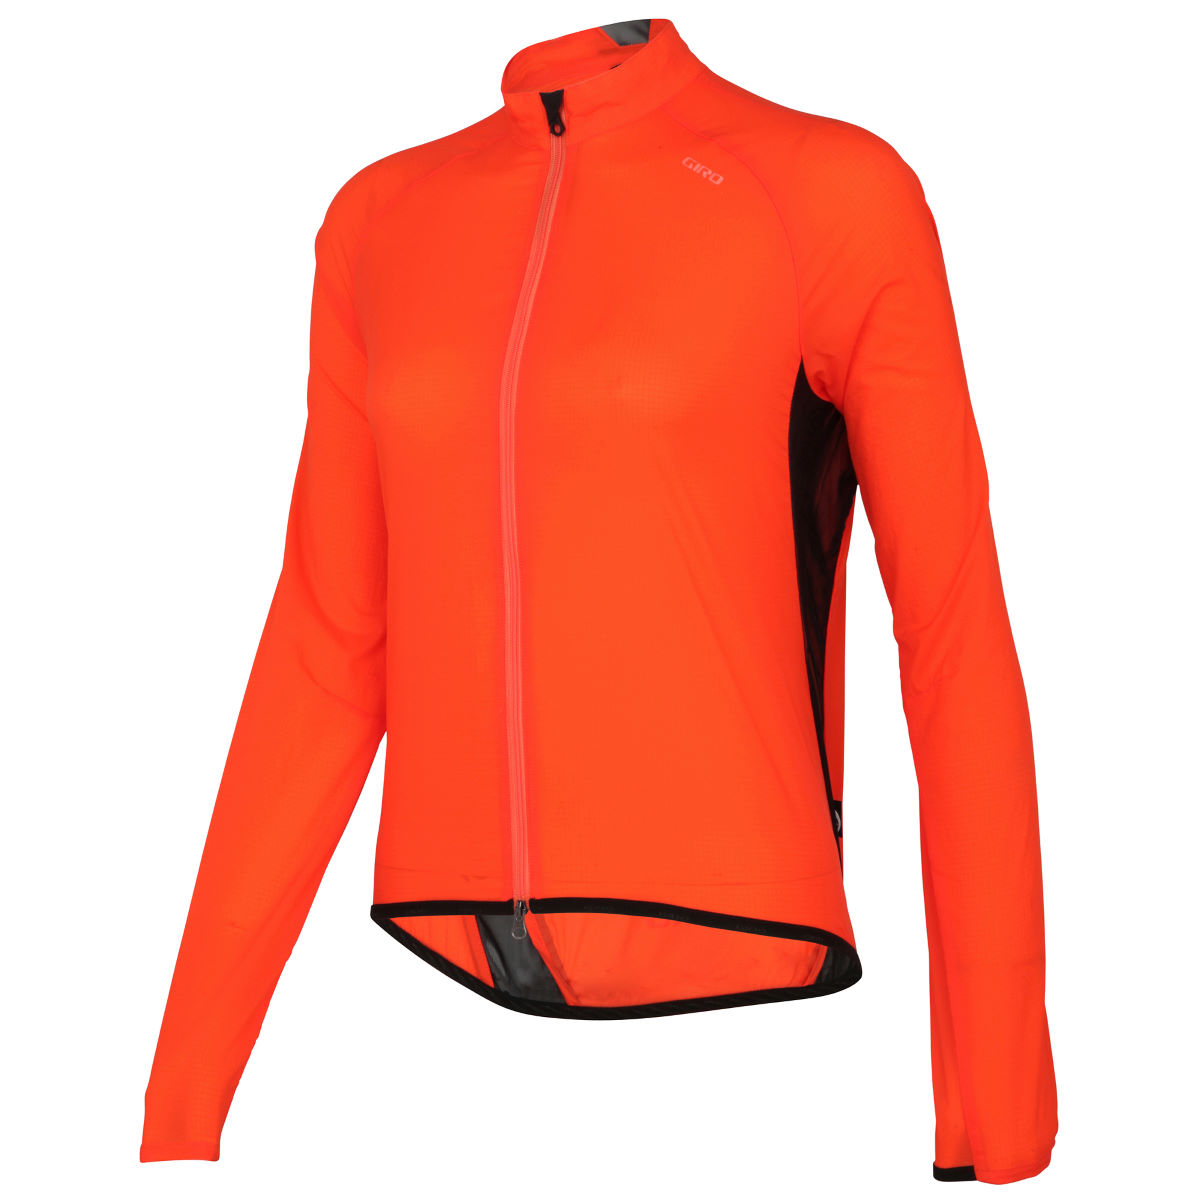 Veste Femme Giro Chrono Wind - S Orange Coupe-vents vélo